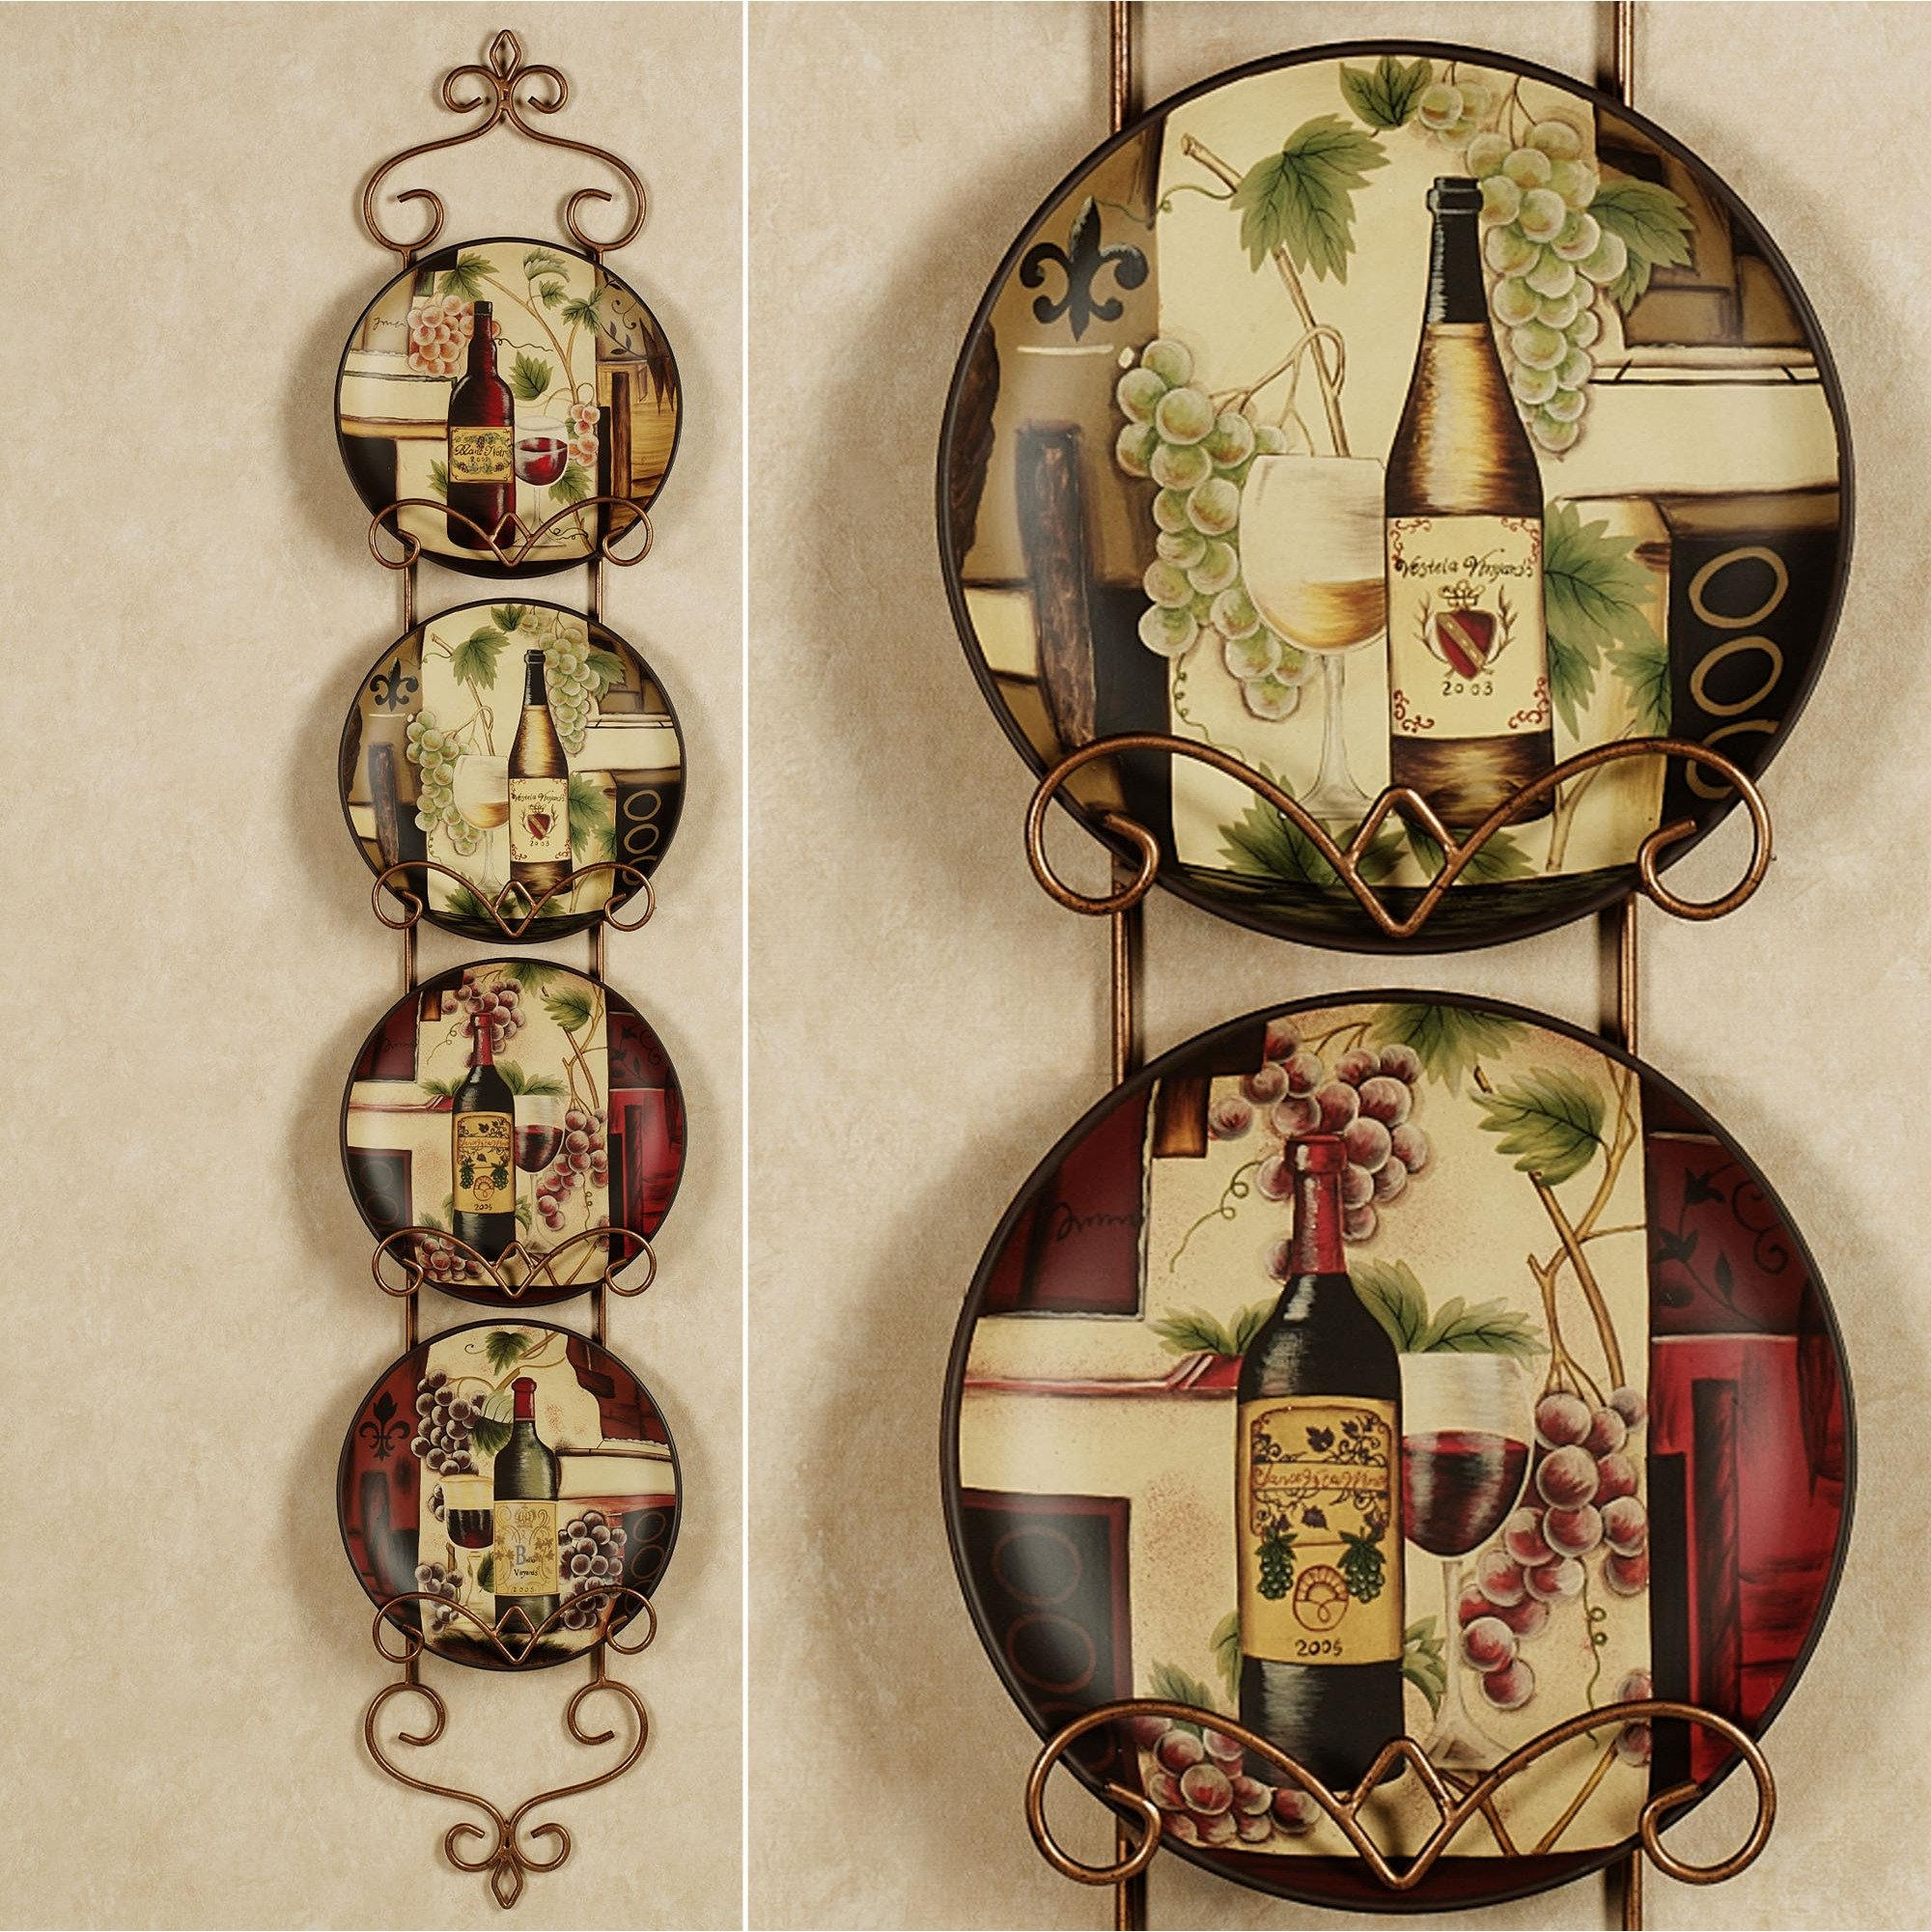 Italian Wall Art For Kitchen | Dzqxh Within Italian Wall Art For Kitchen (Image 9 of 20)